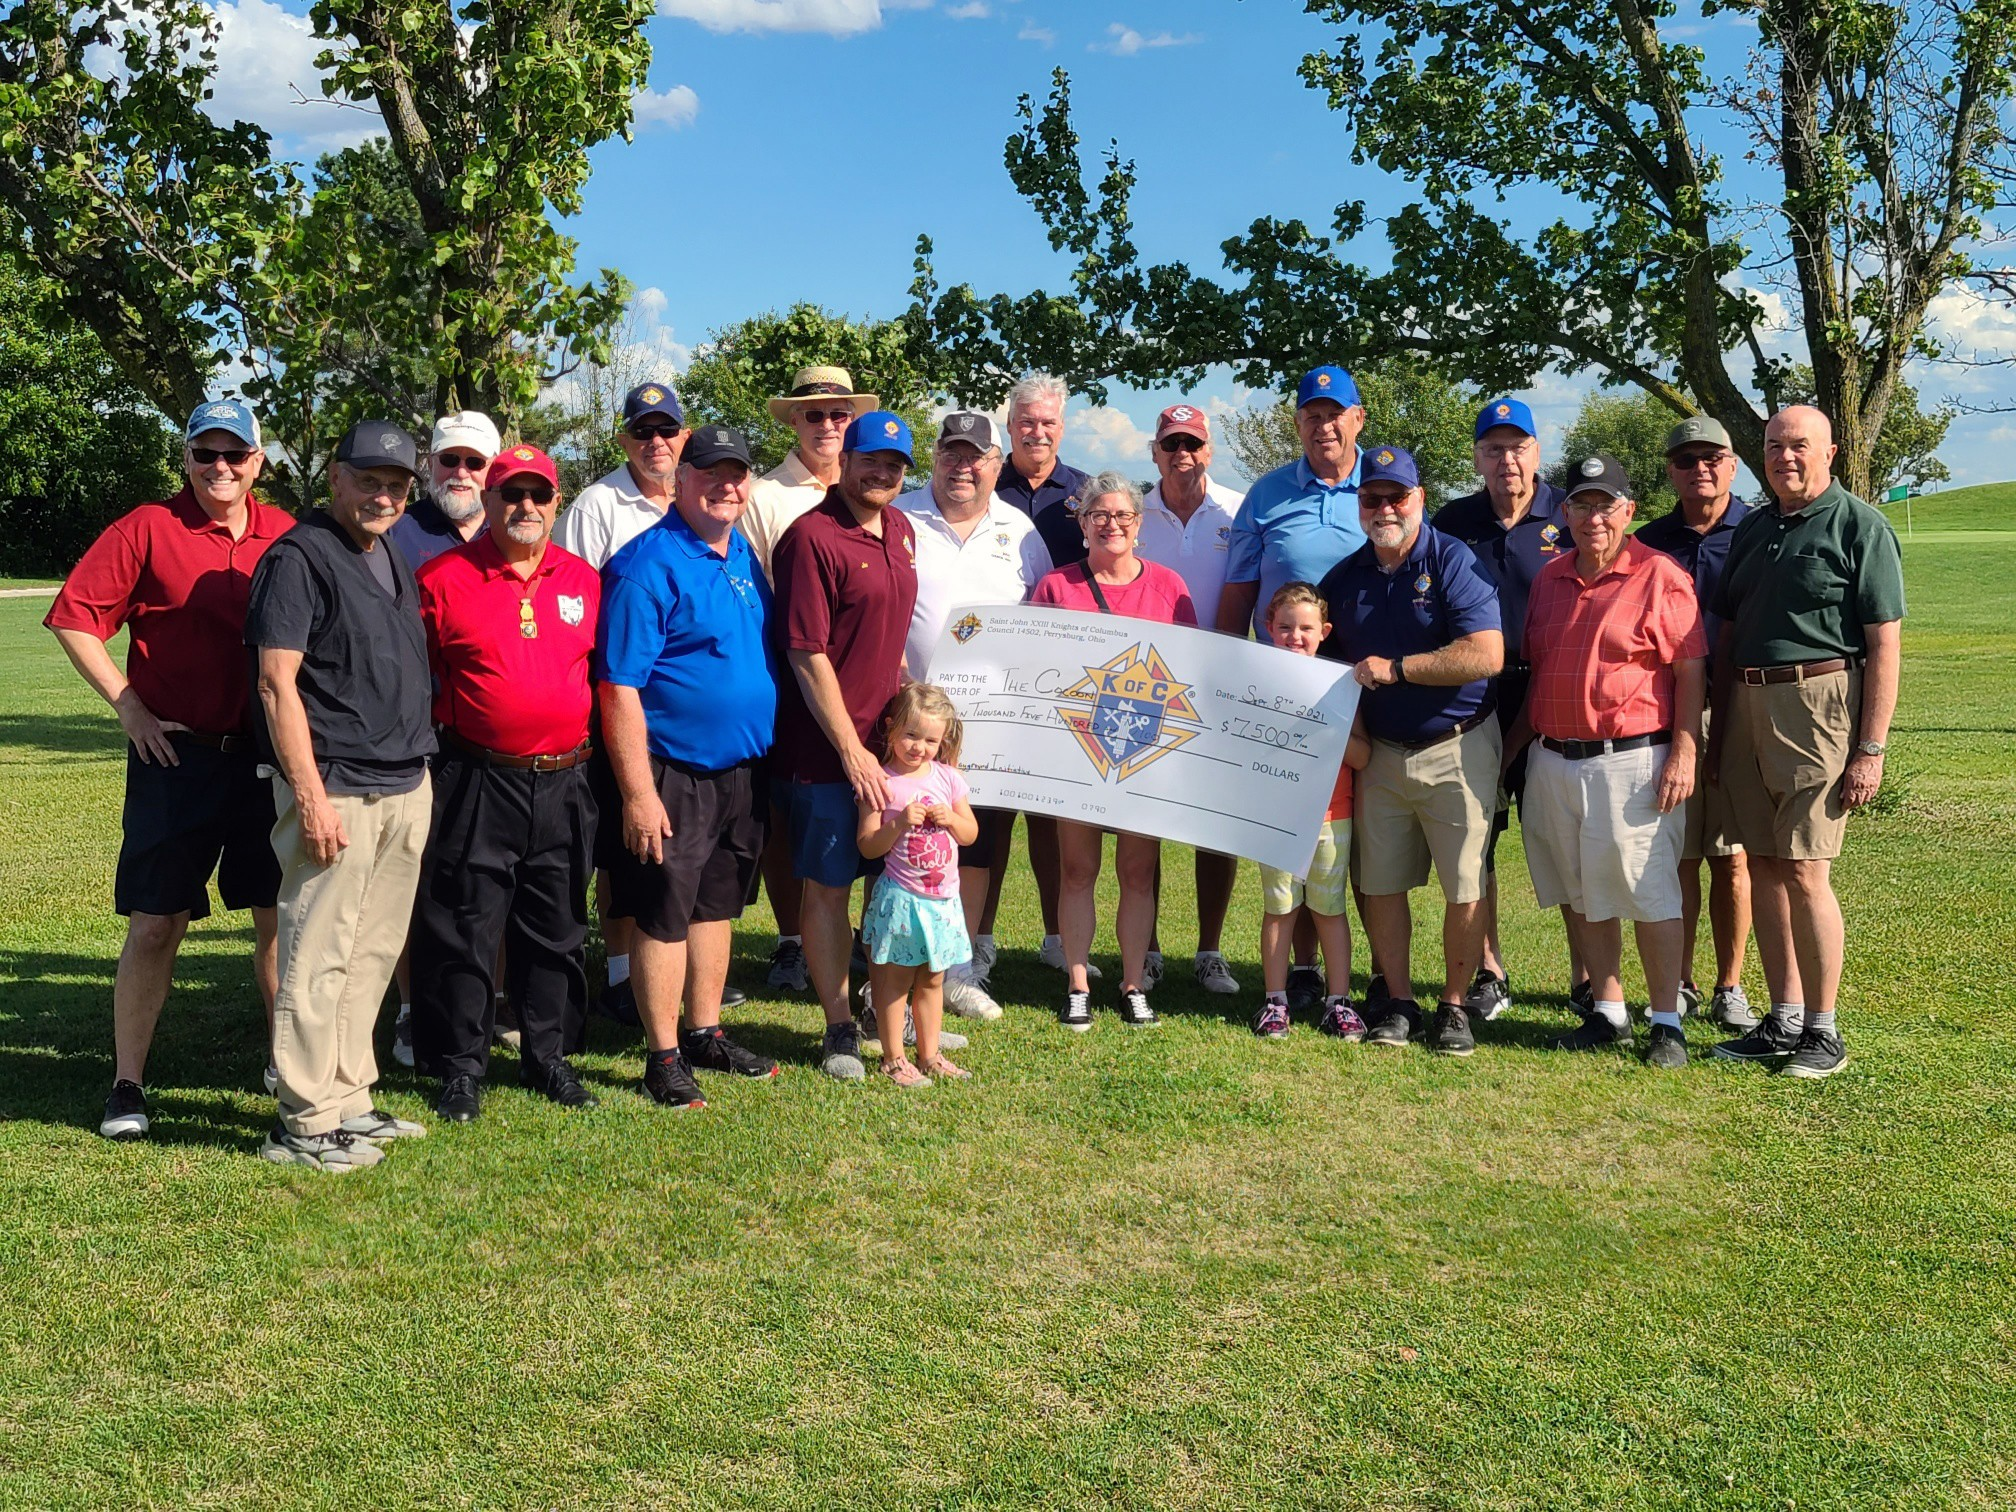 Robin Guidera (center), development and communications director for The Cocoon, along with several members of Knights of Columbus Council 14502, including golf outing committee members Daryl Brunswick (chairman), Larry Turner, Bob Wyma, Dennis Bialecki, Jerry Radwanski, and Rich Jun.